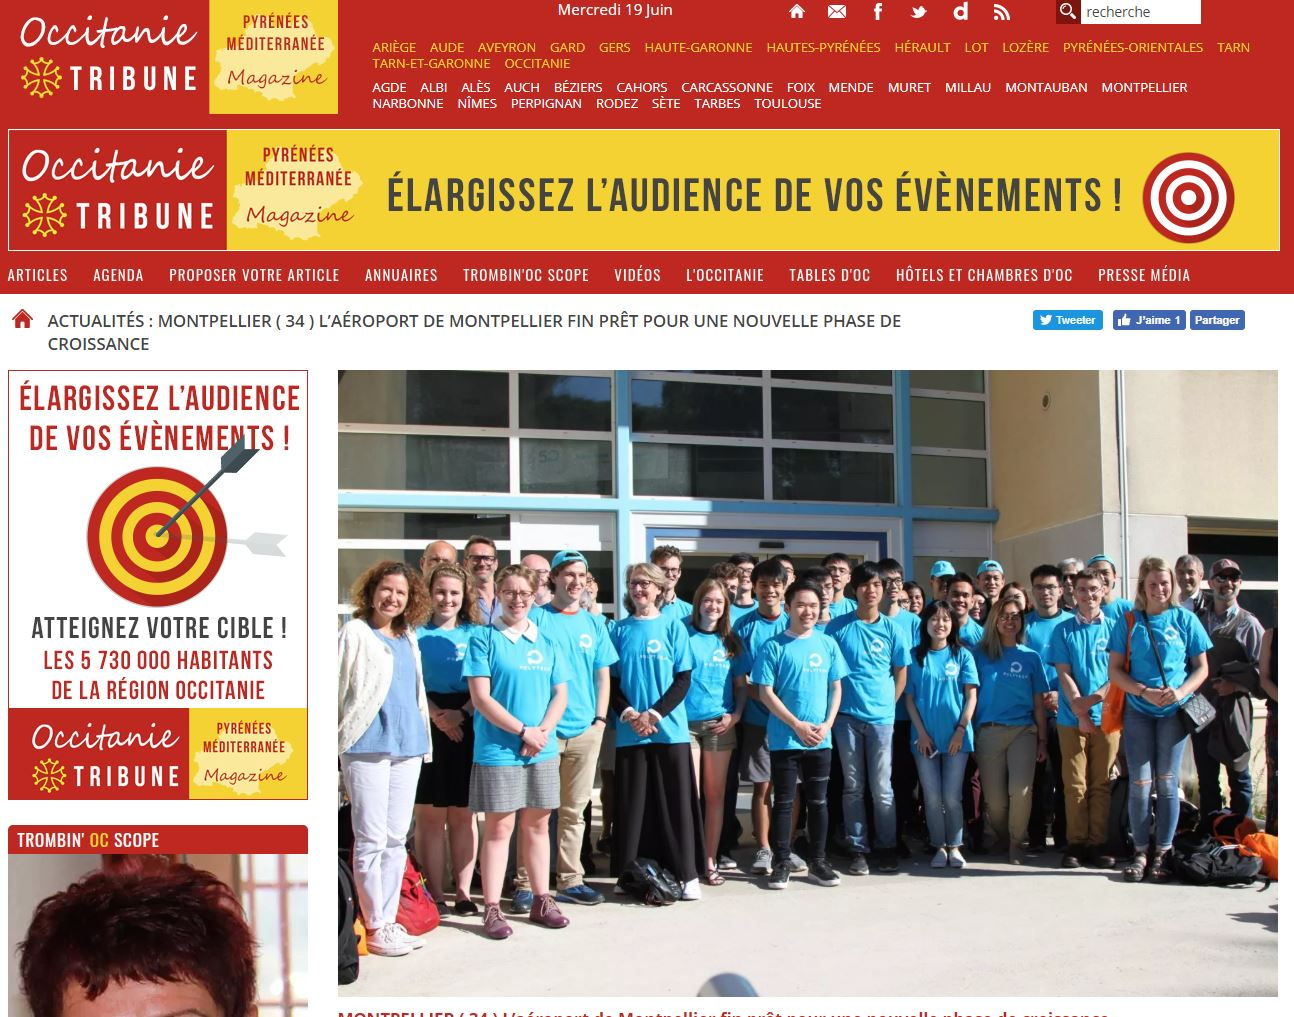 occitanie tribune summerschool 19juin2019